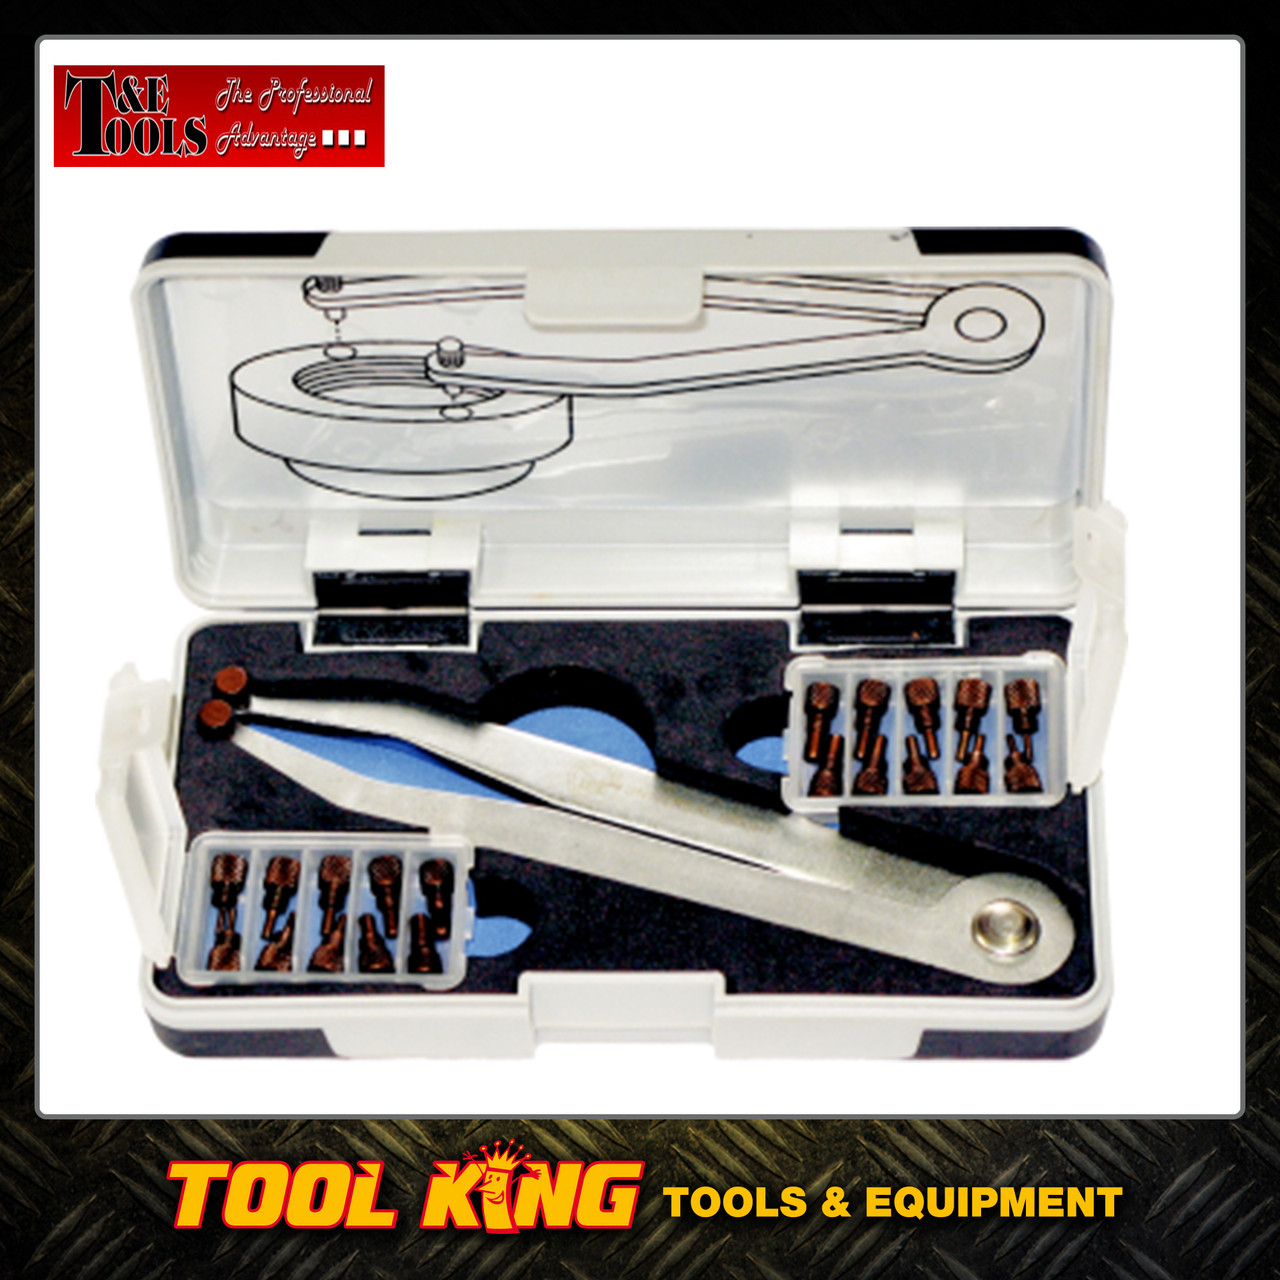 23pc Adjustable face pin wrench set T&E Tools